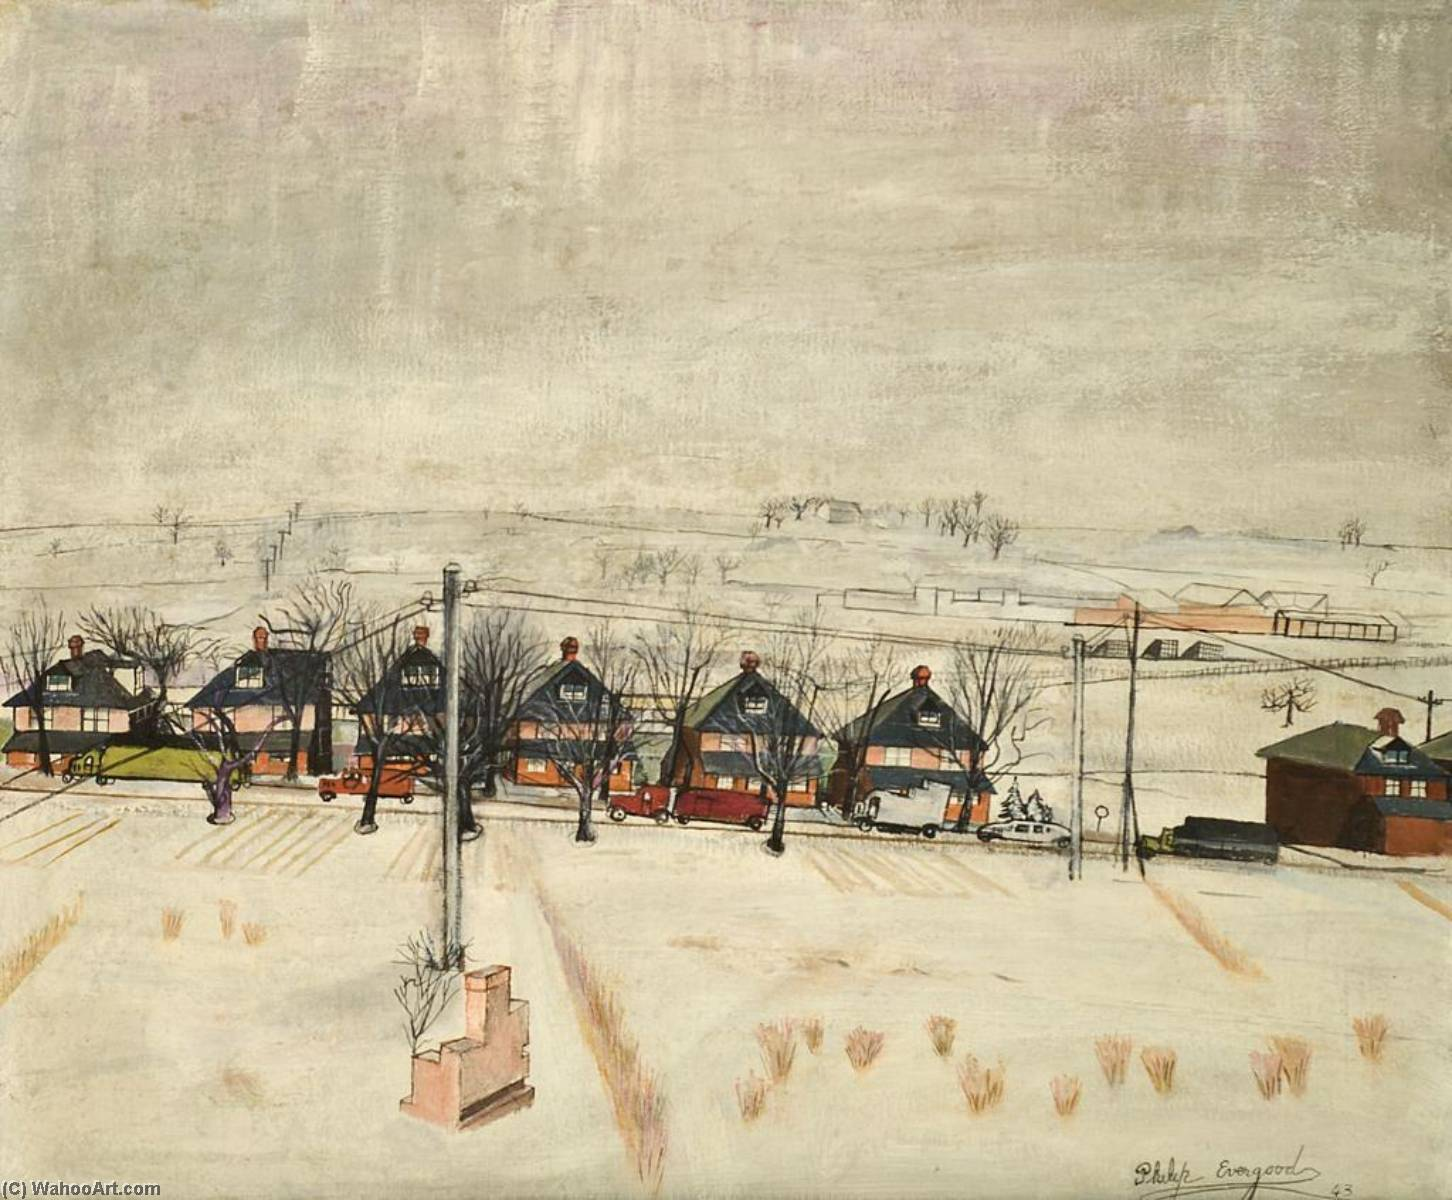 Suburban Landscape, 1943 by Philip Evergood (1901-1973) | WahooArt.com